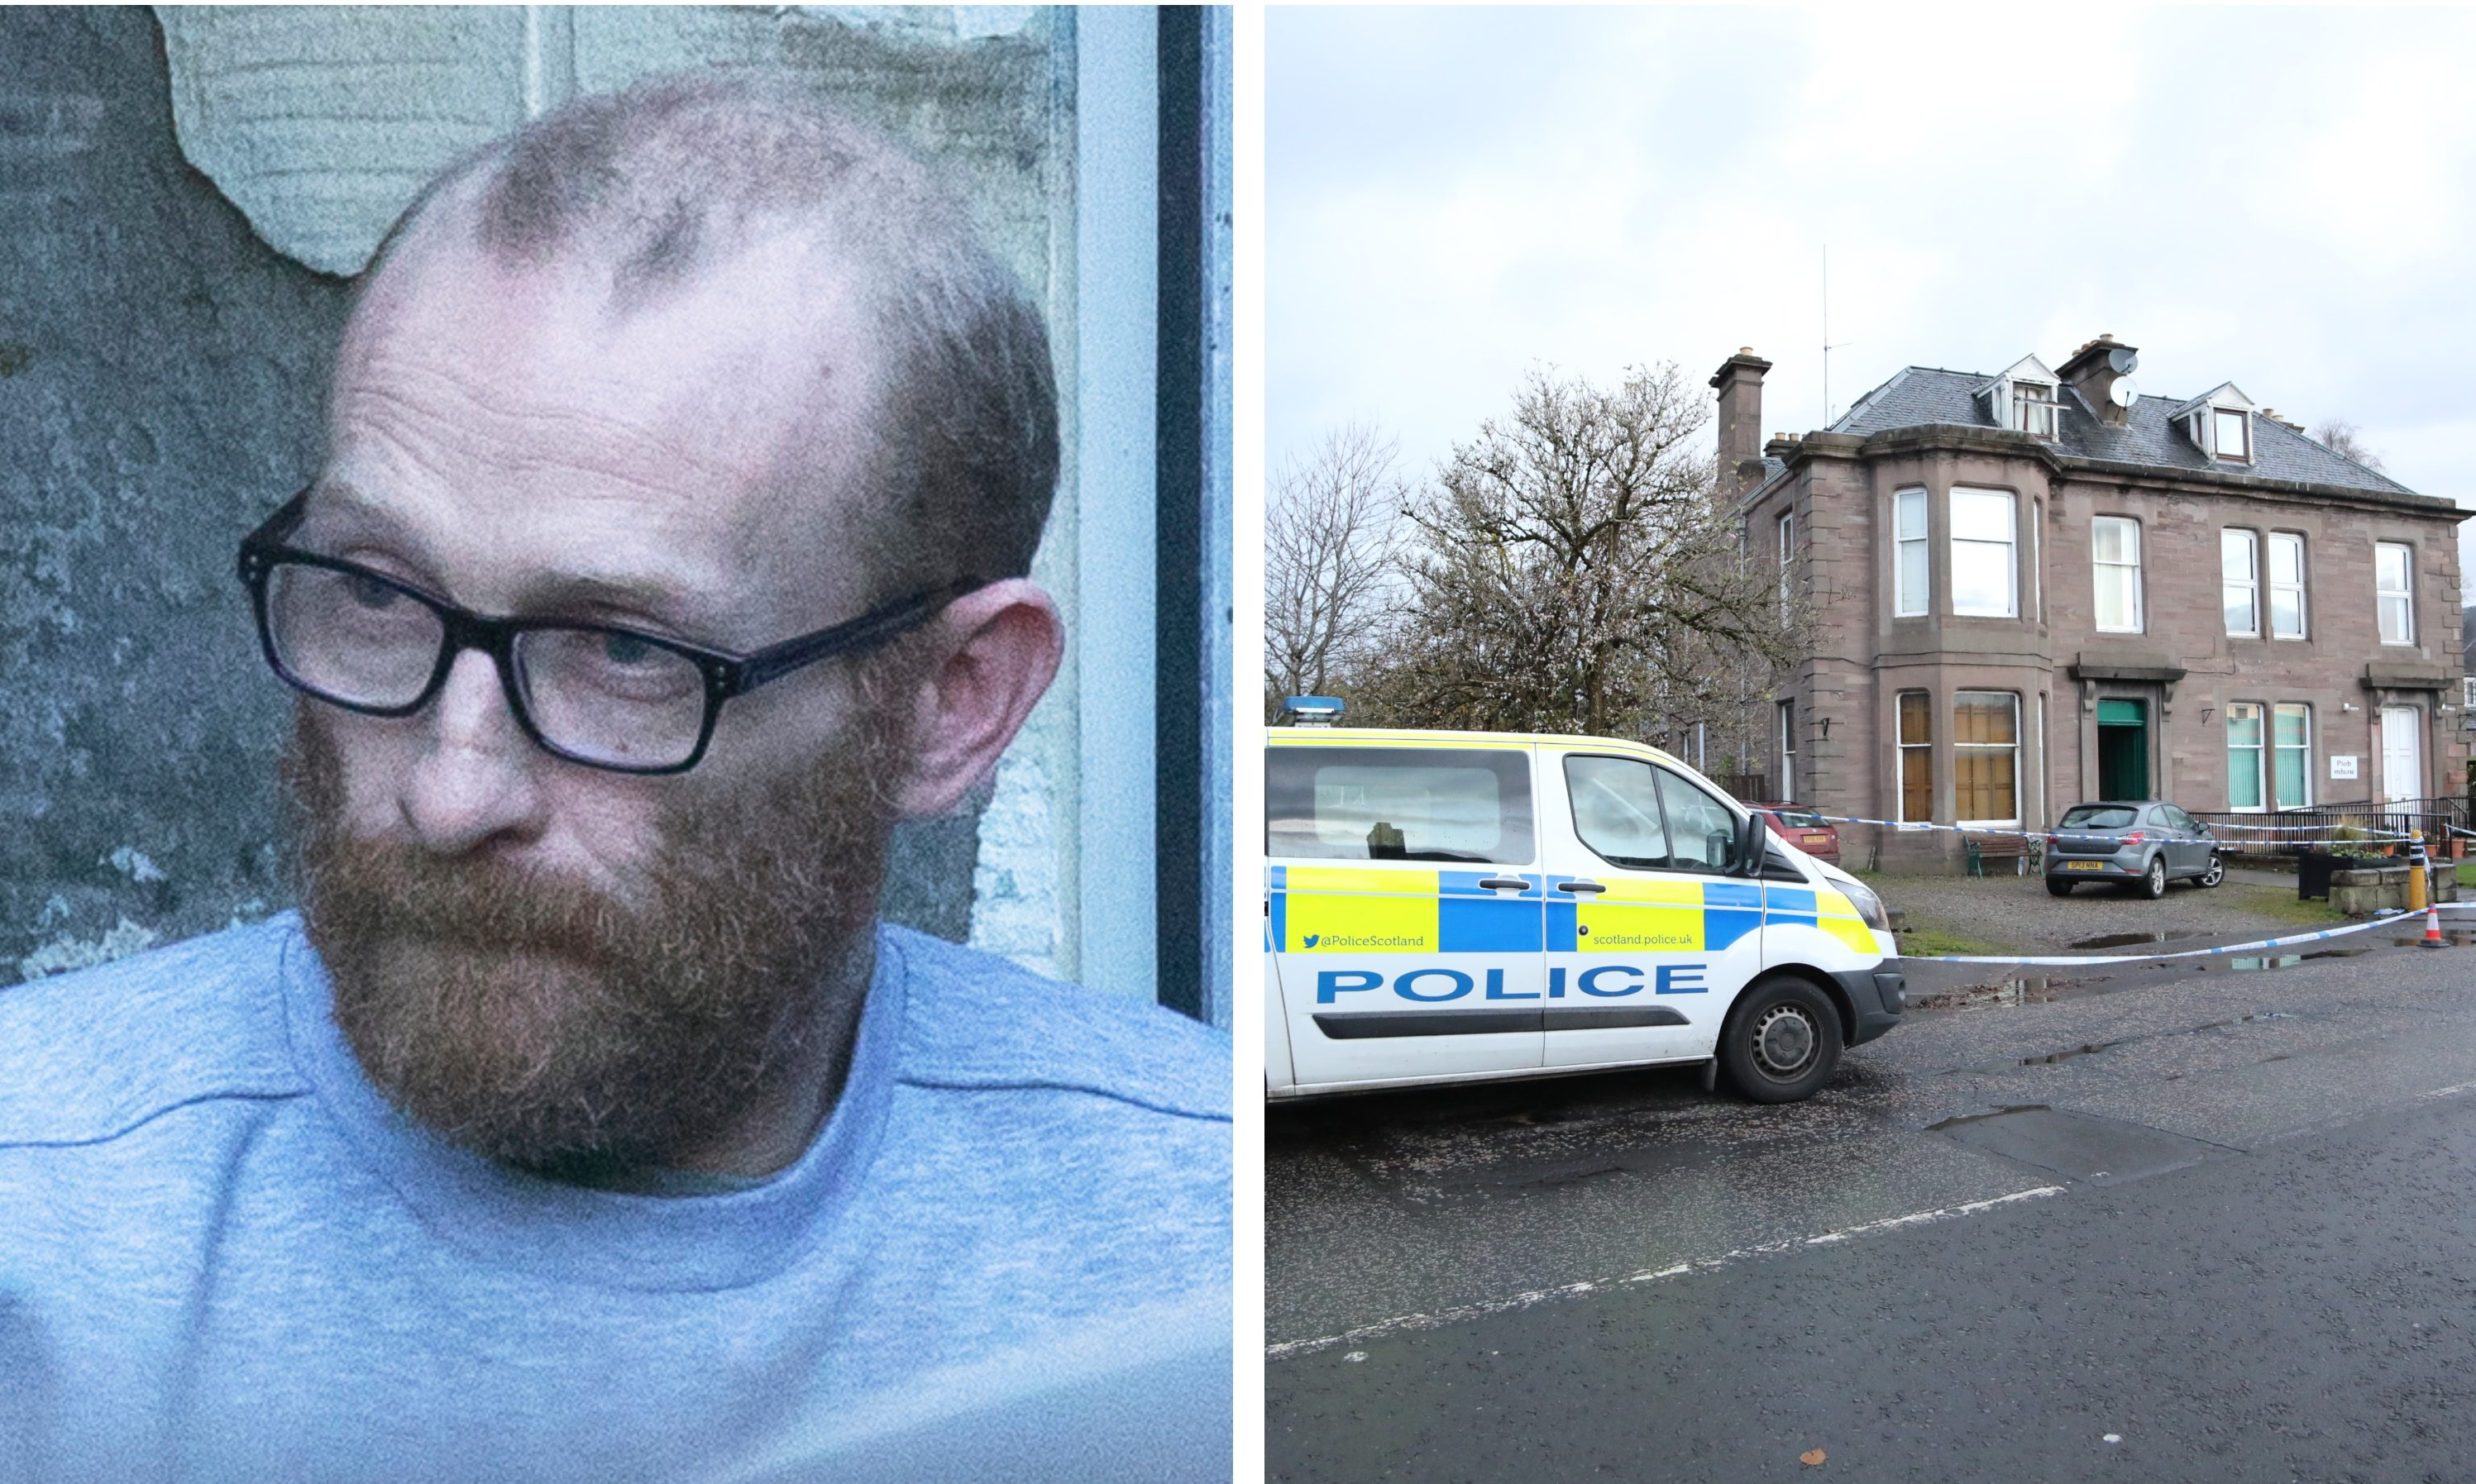 Andrew Morris, left, and the scene of the crime in Coupar Angus, right.